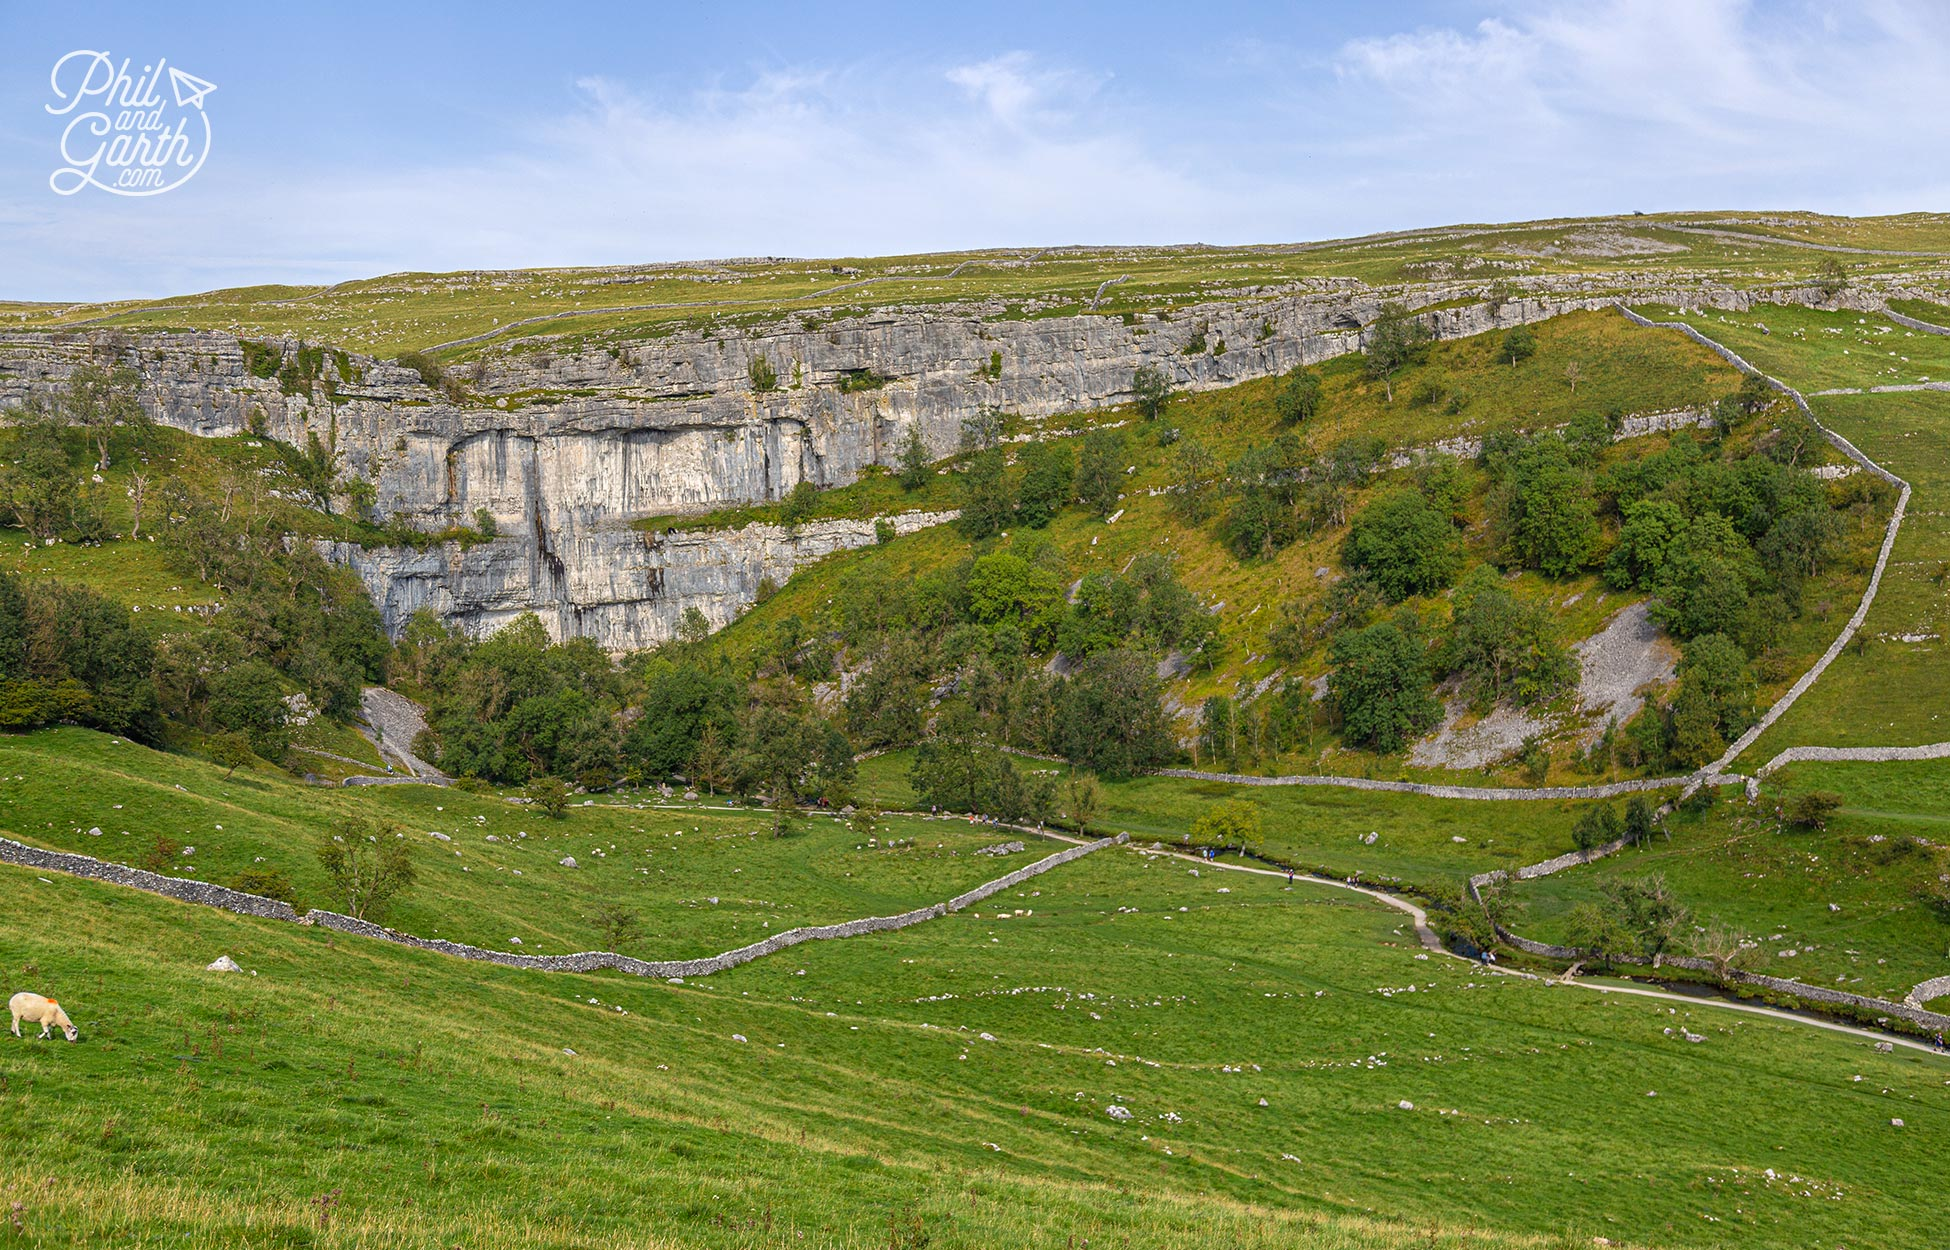 At the top of Malham Cove is a limestone pavement where they filmed a Harry Potter scene